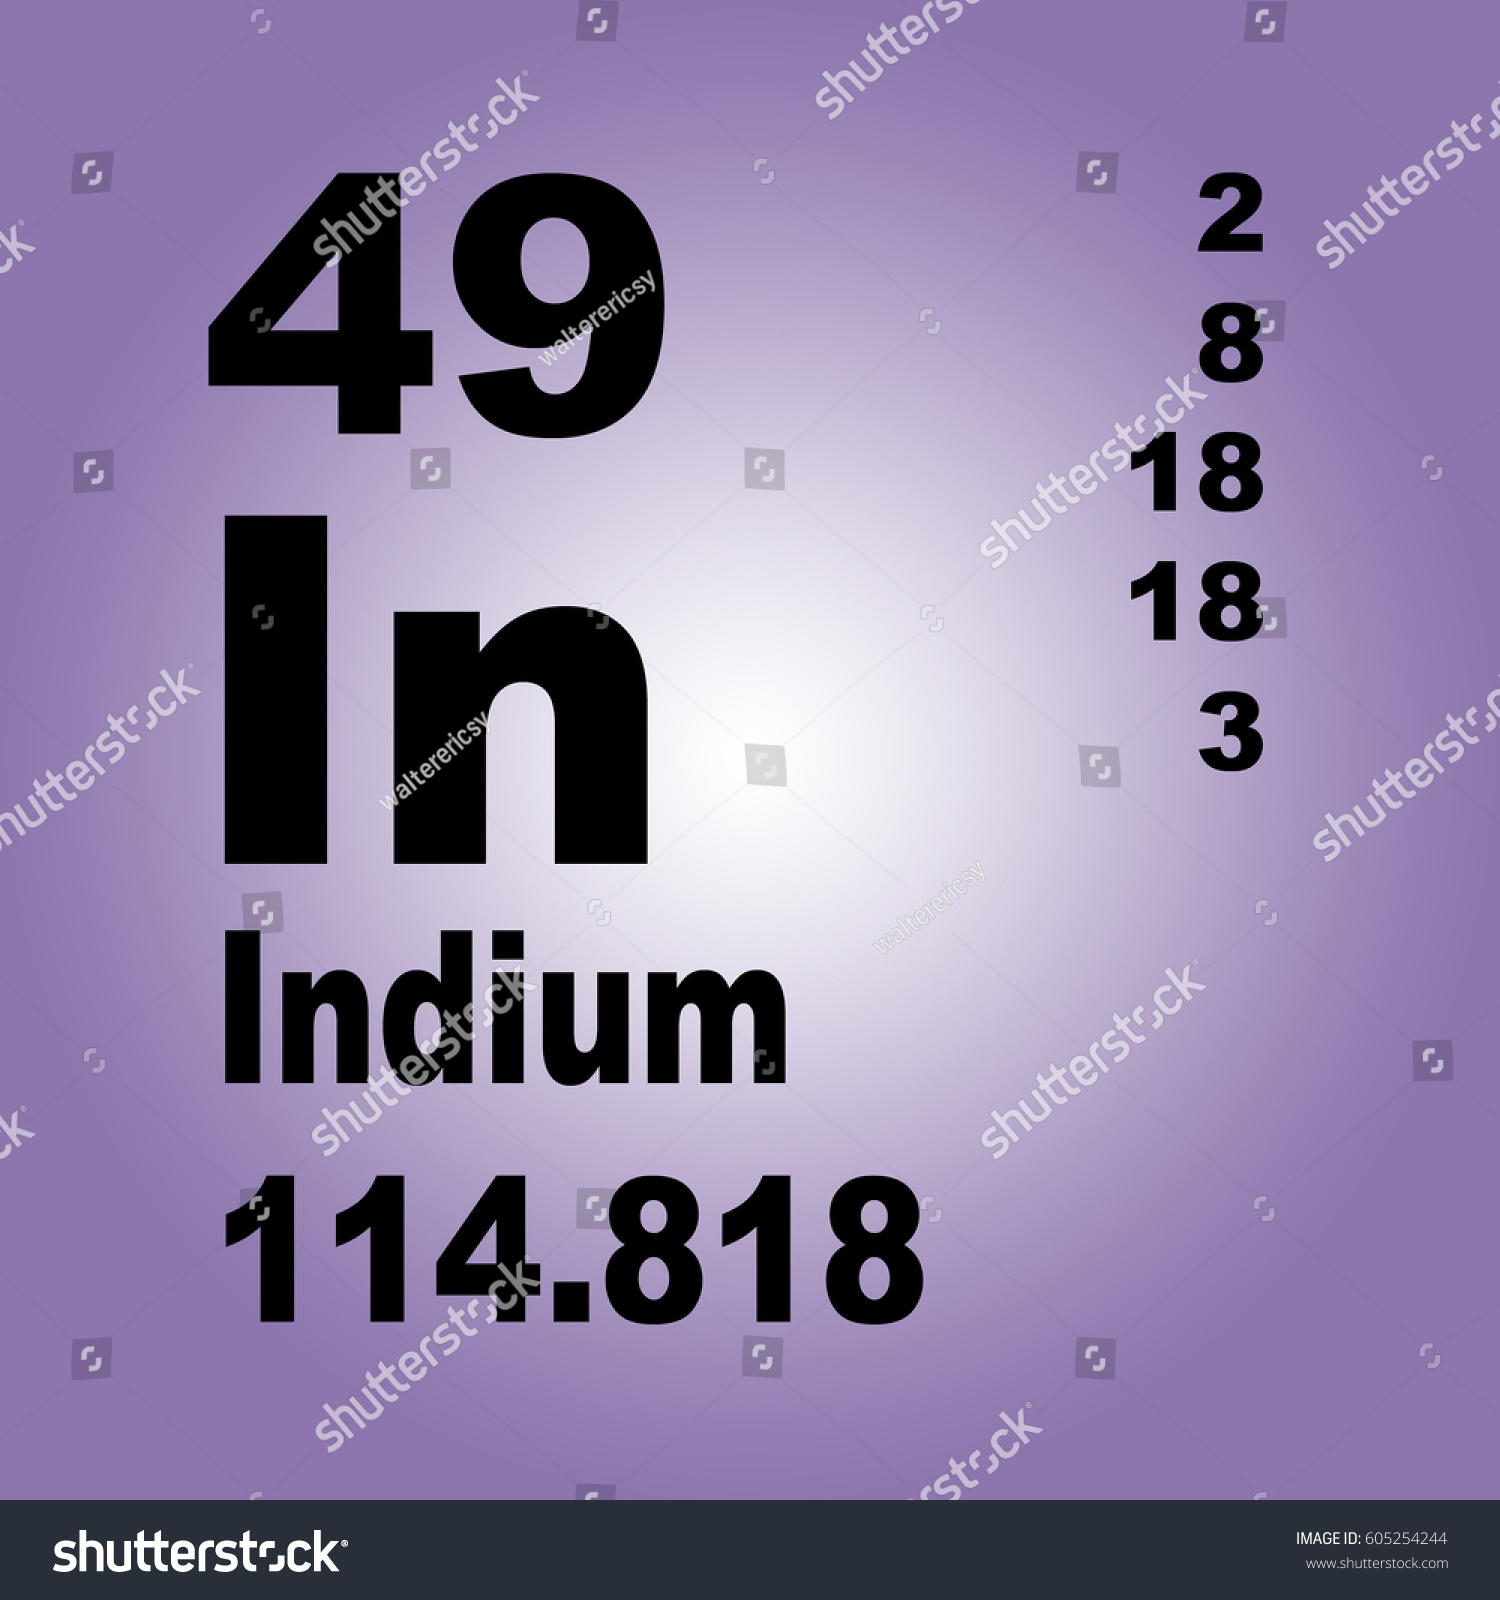 Indium chemical chemistry science 49 in stock illustration indium chemical chemistry science 49 in periodic table of elements gamestrikefo Gallery